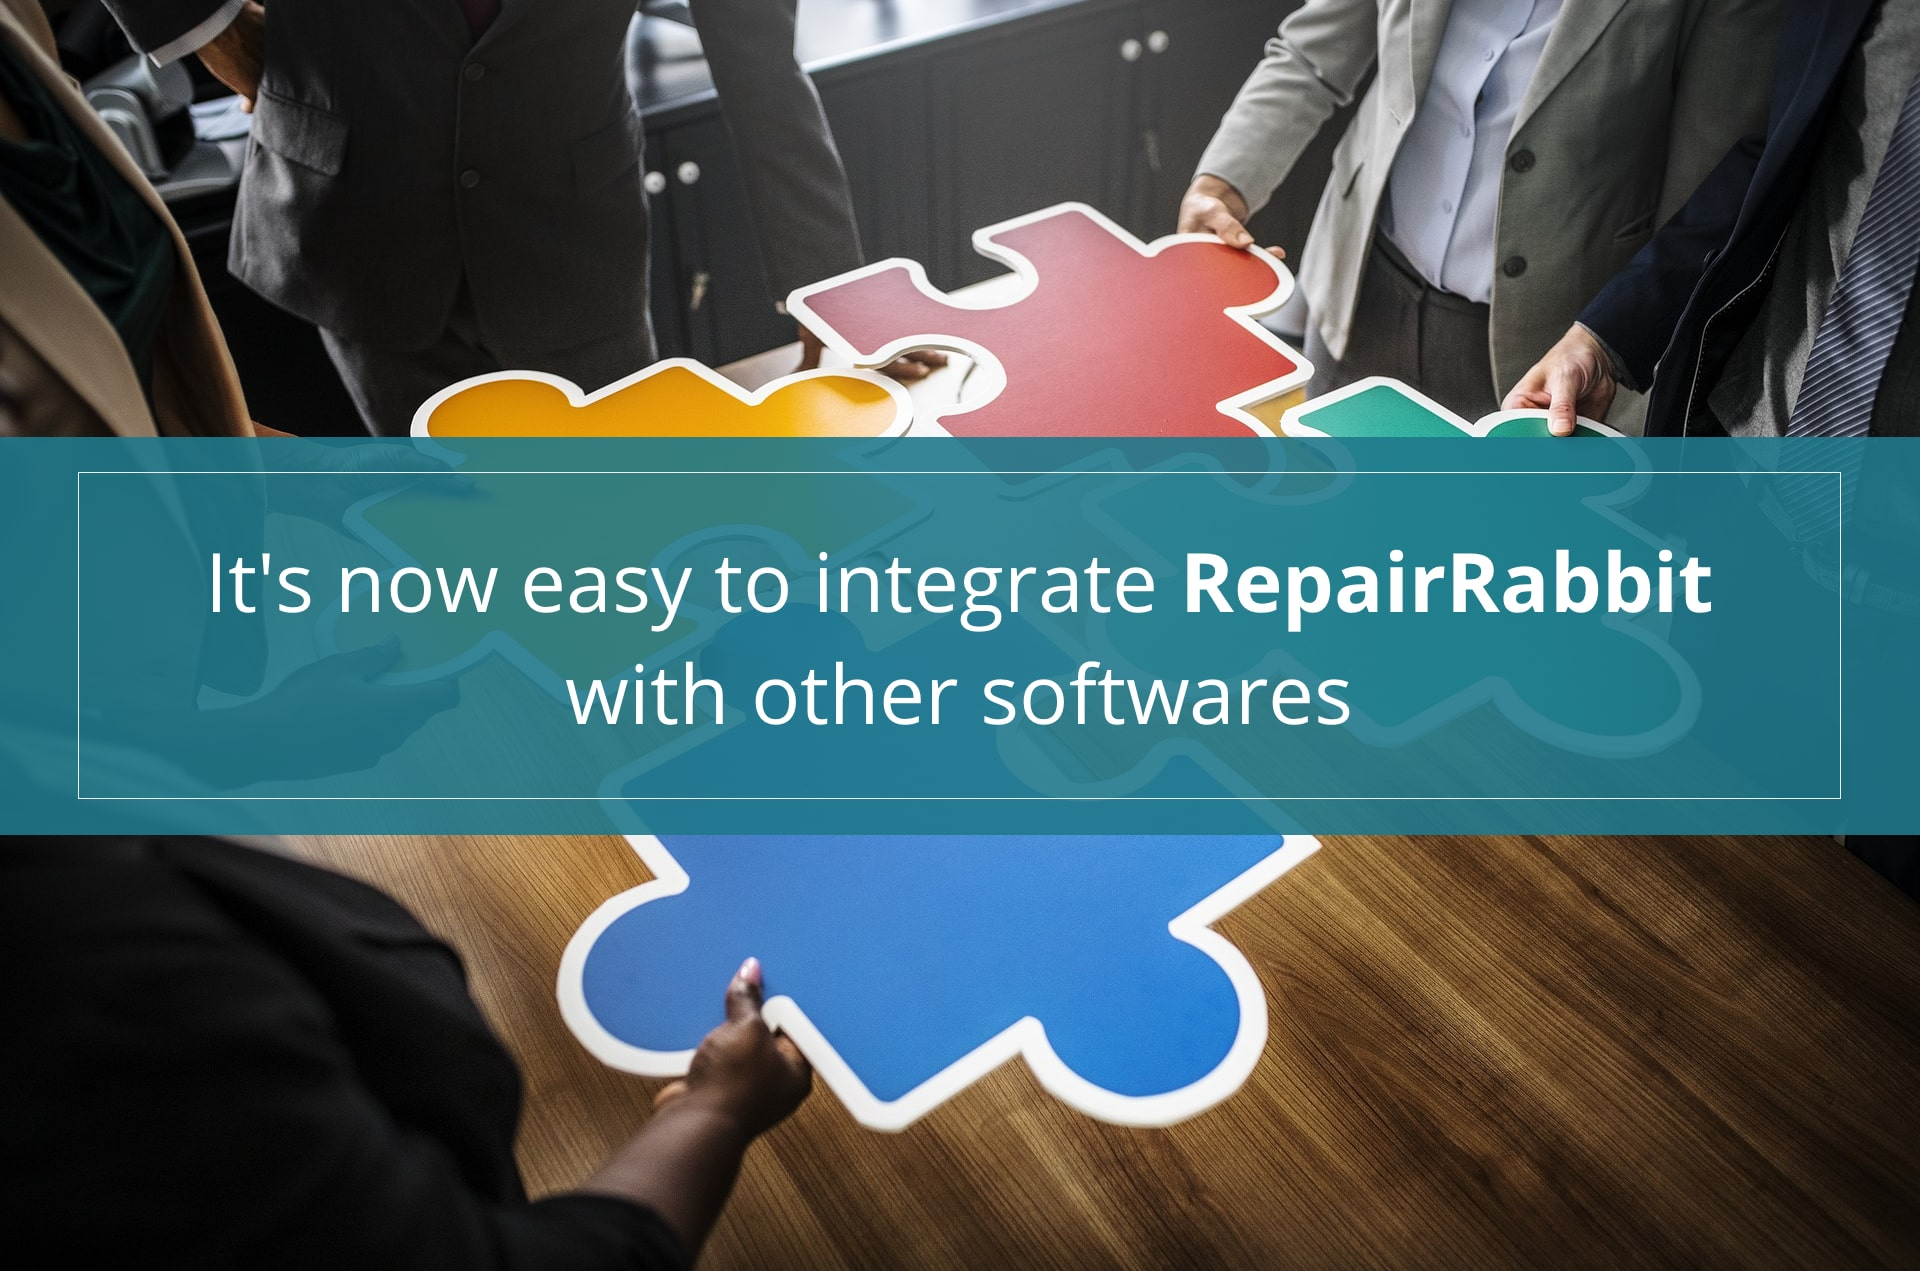 It's now easy to integrate RepairRabbit with other softwares